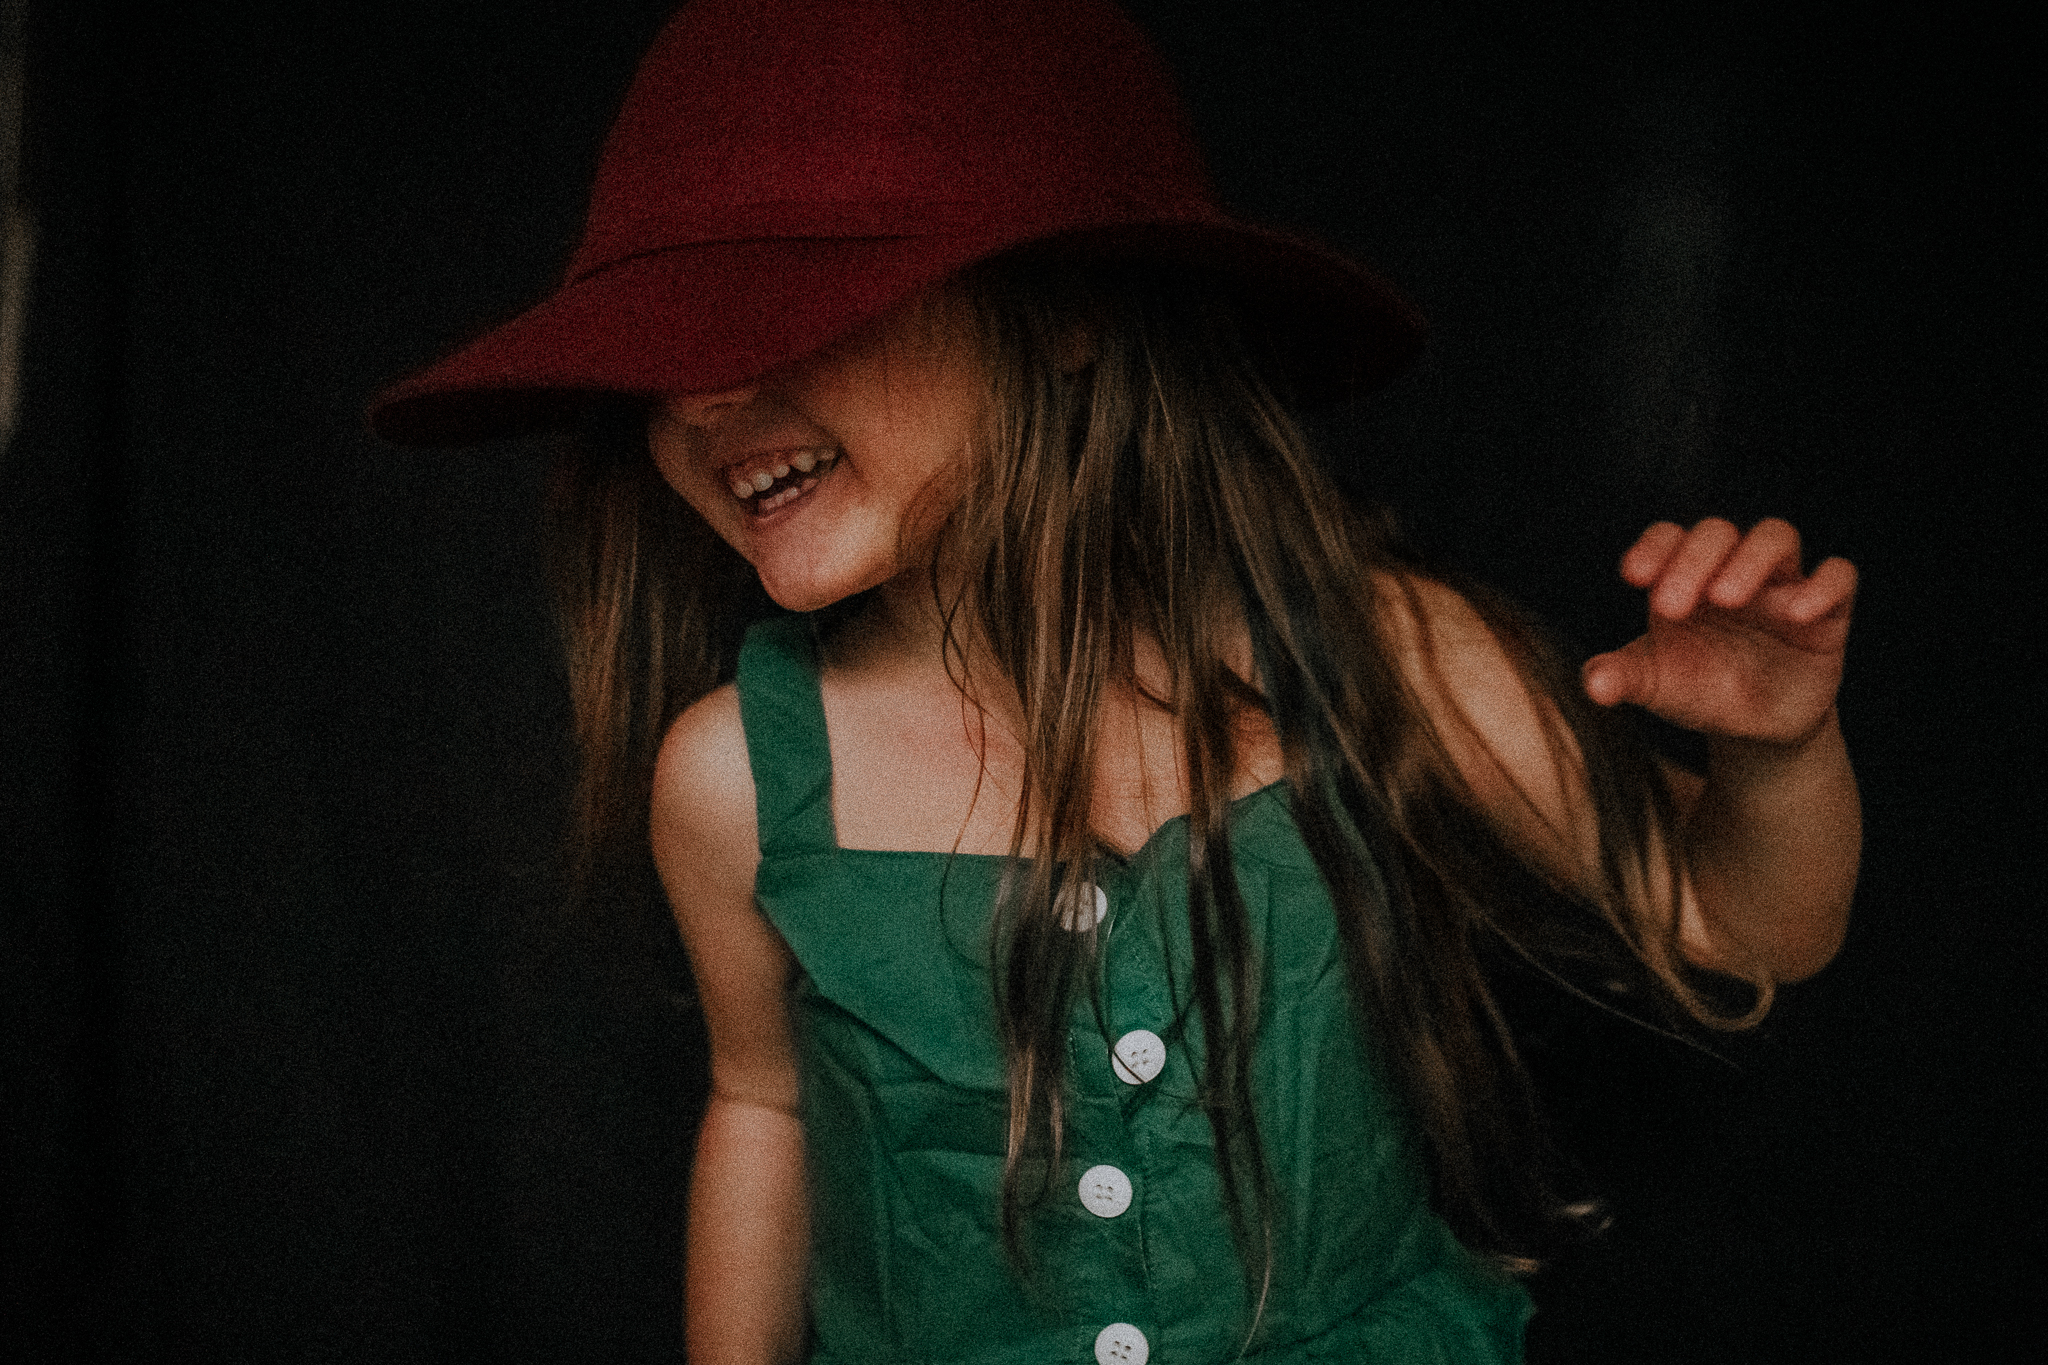 girl dancing and laughing in red hat